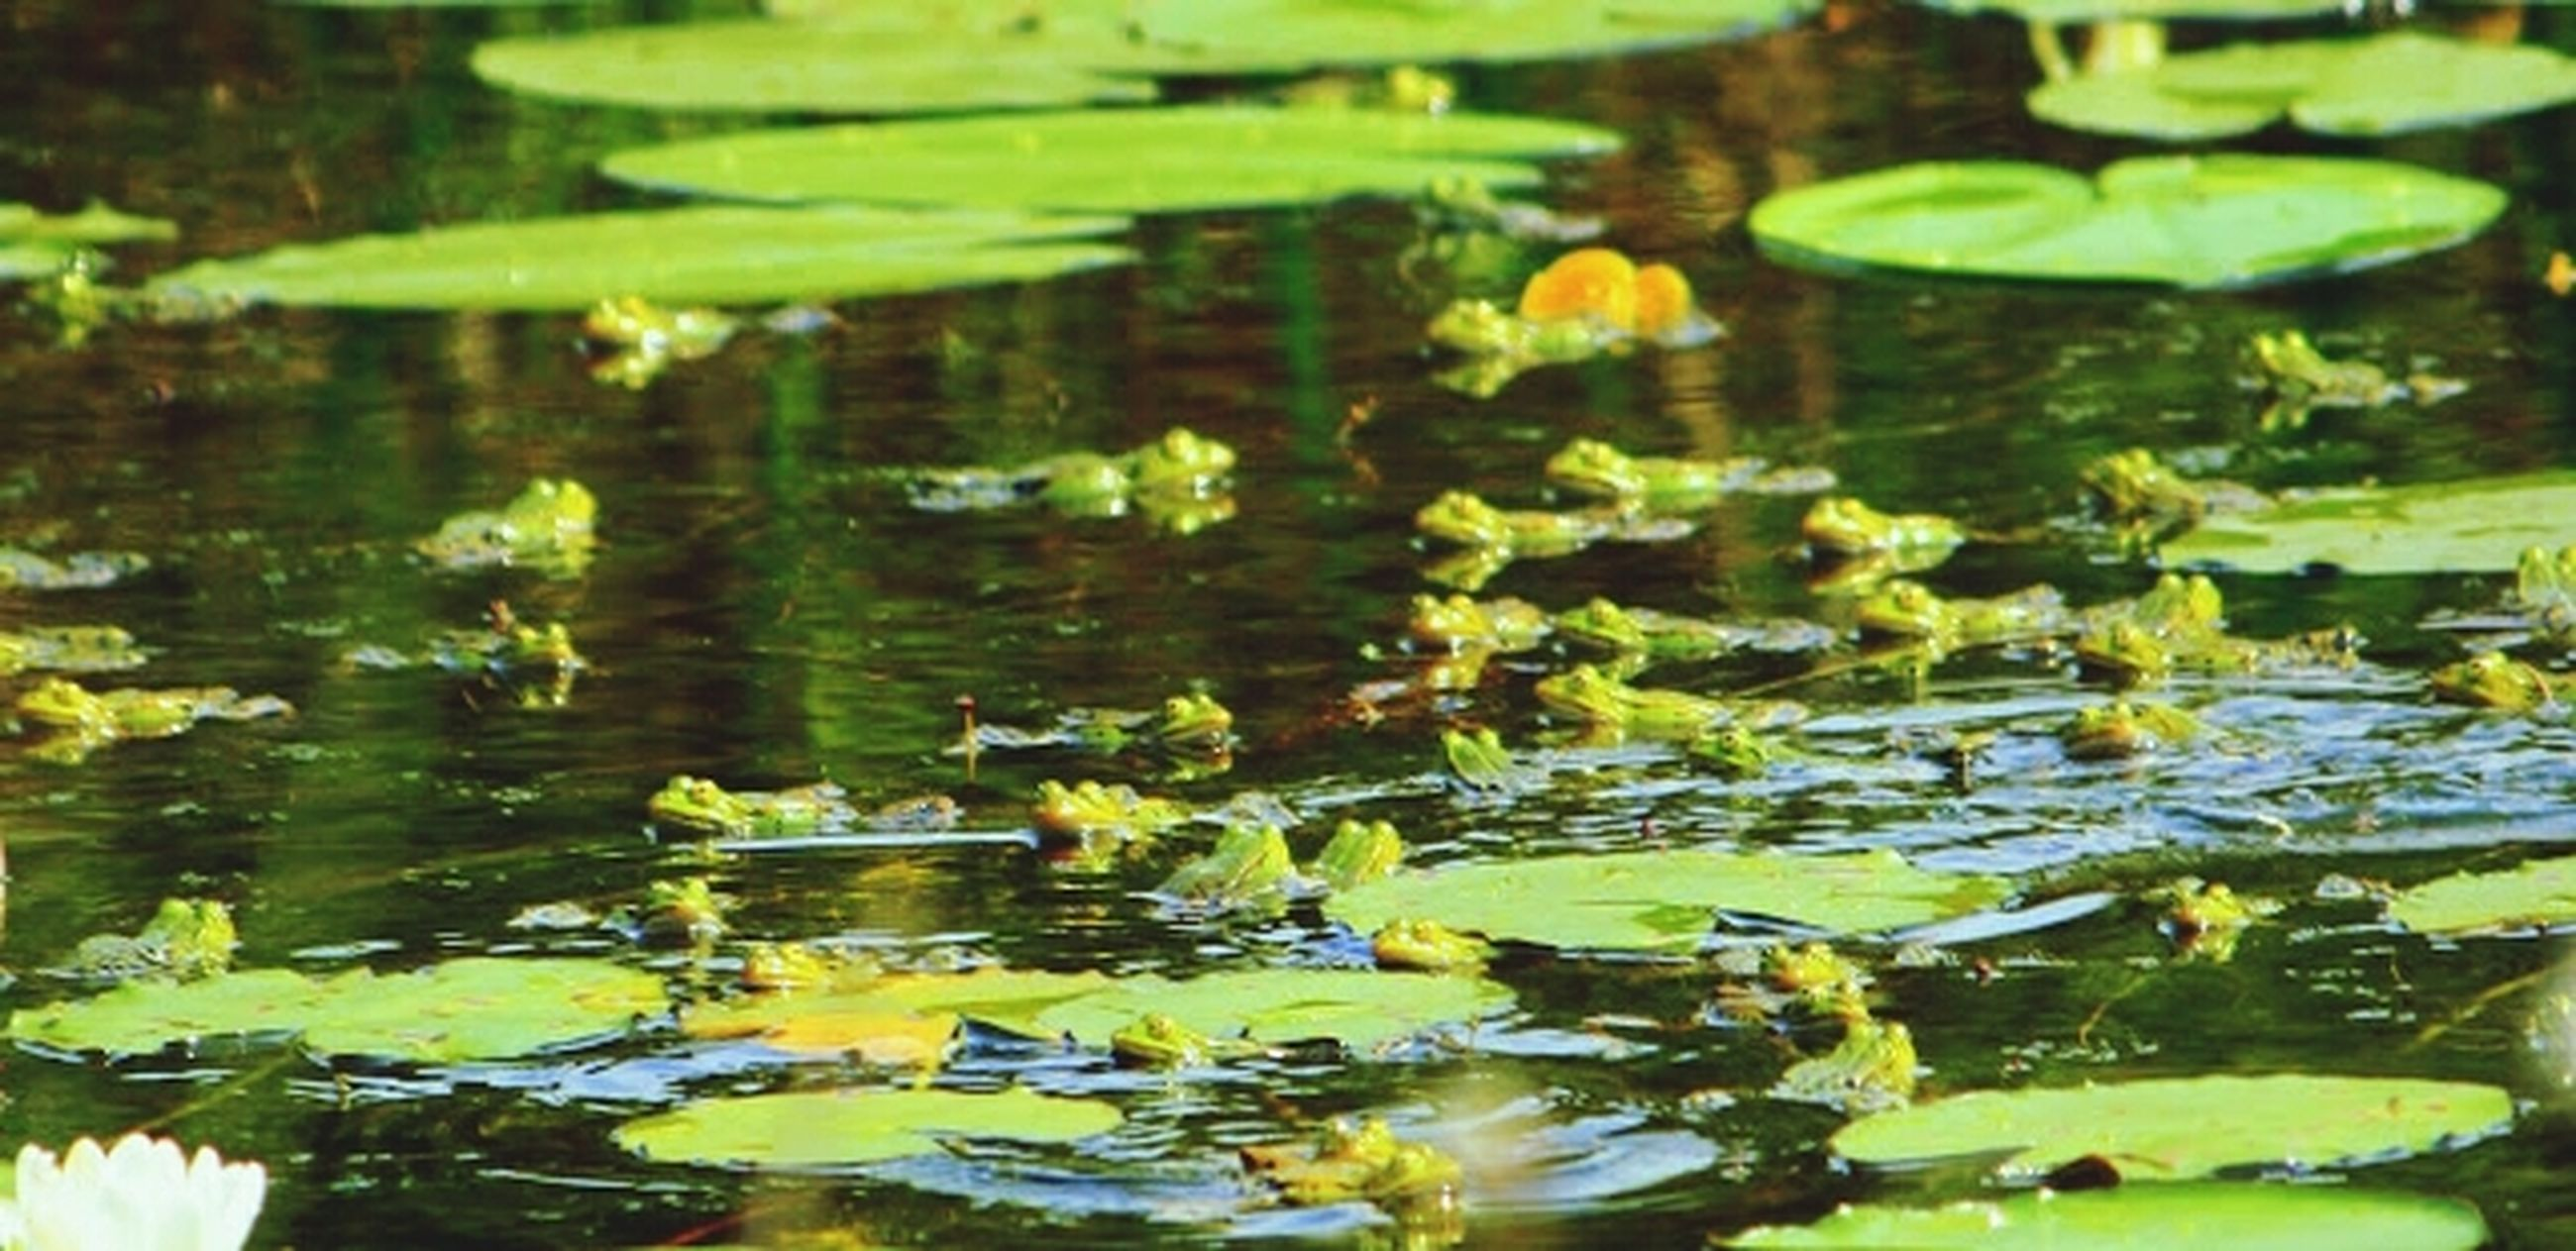 water, pond, water lily, floating on water, lake, leaf, reflection, animals in the wild, nature, flower, plant, growth, beauty in nature, animal themes, wildlife, green color, waterfront, lotus water lily, swimming, high angle view